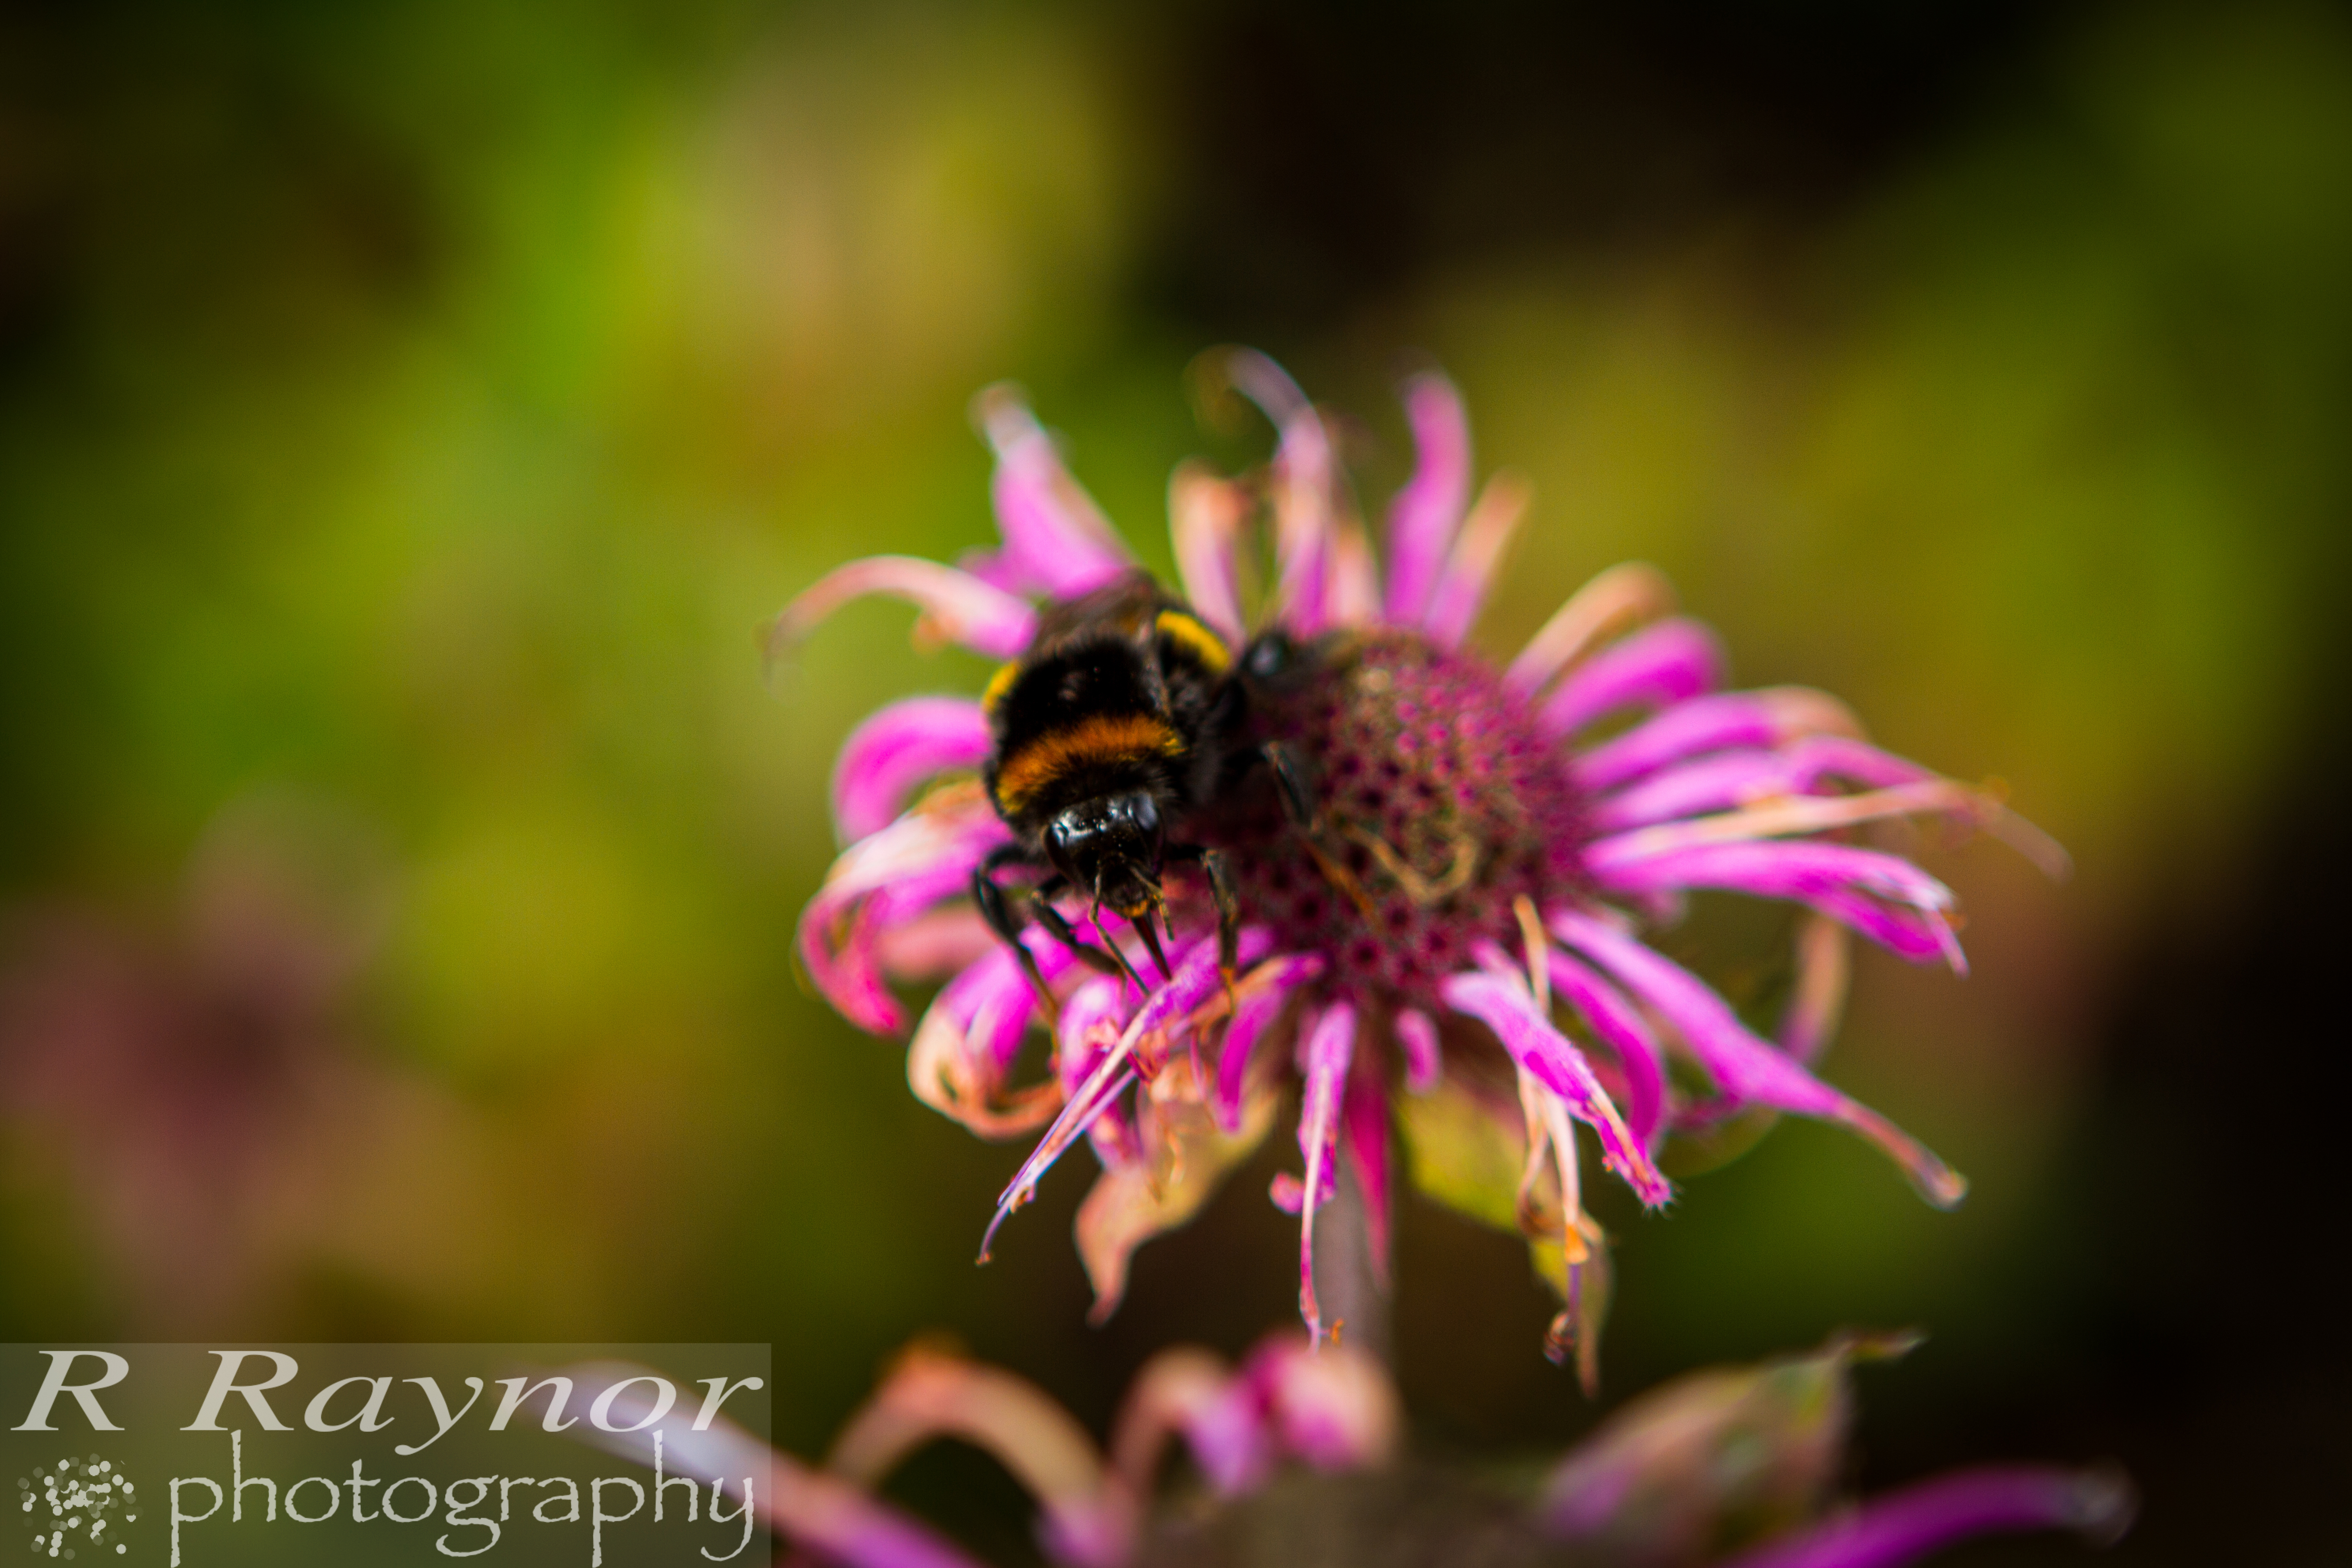 First_20150903_RRaynor0011